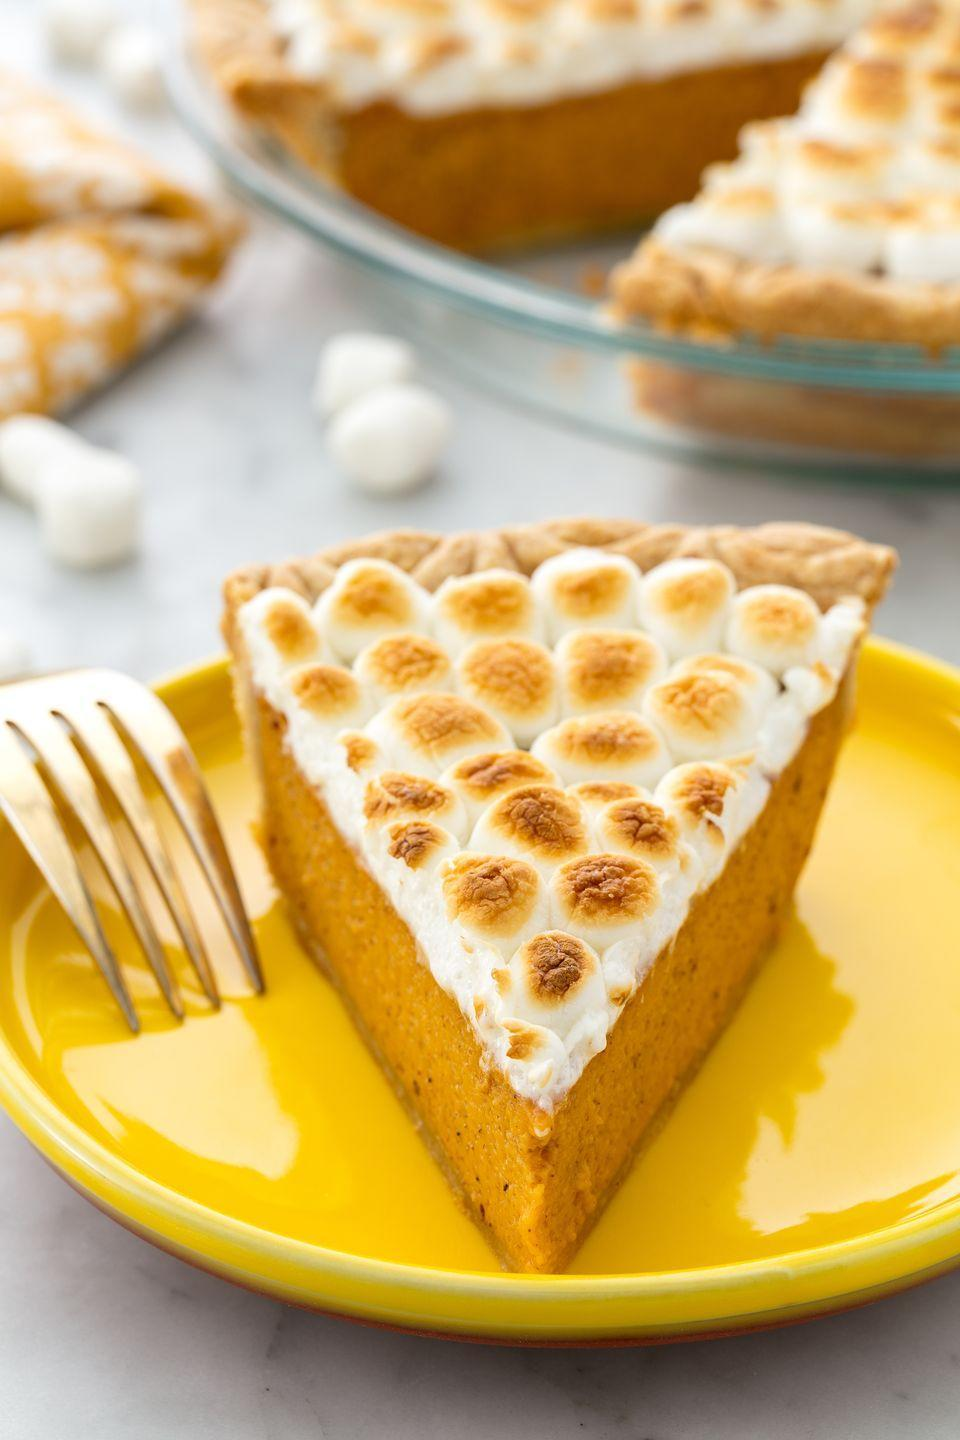 """<p>A sweet potato pie to accompany your sweet potato casserole at Thanksgiving.</p><p>Get the recipe from <a href=""""https://www.delish.com/cooking/recipe-ideas/recipes/a55690/best-sweet-potato-pie-recipe/"""" rel=""""nofollow noopener"""" target=""""_blank"""" data-ylk=""""slk:Delish"""" class=""""link rapid-noclick-resp"""">Delish</a>.</p>"""